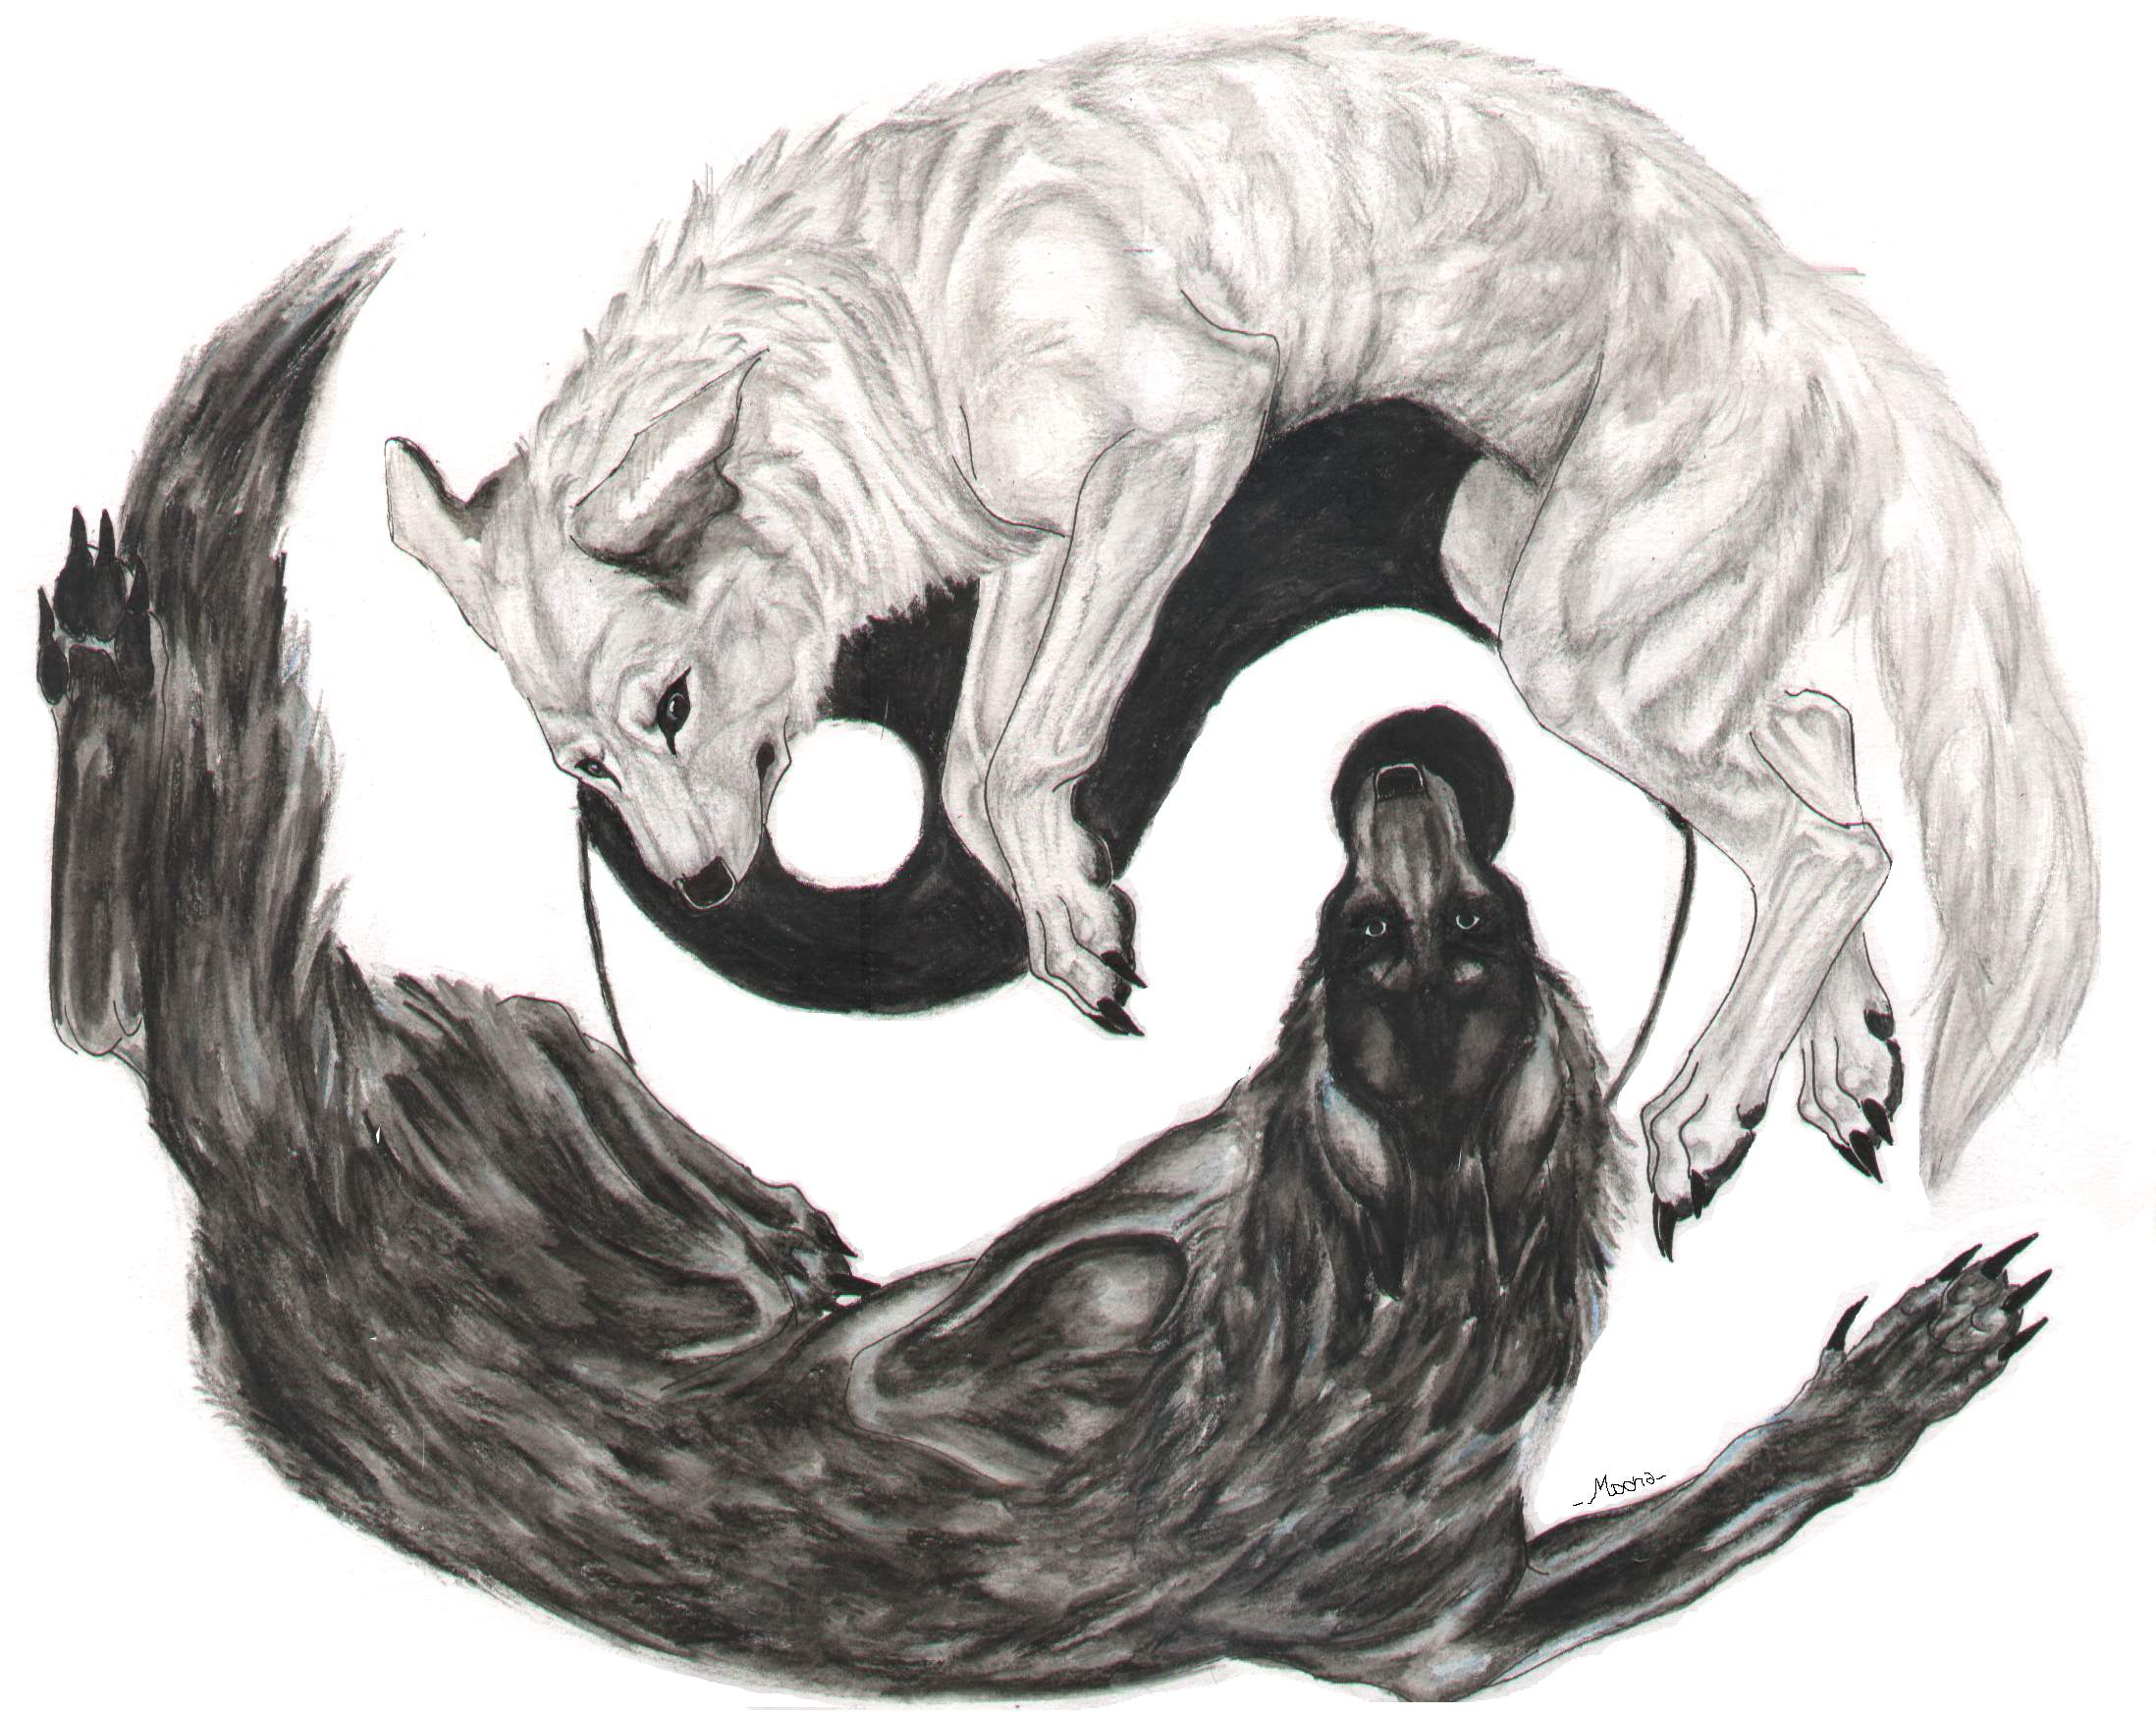 e010f5a7e0158 Which wolf will win? The one you feed. | Tattoo. | Pinterest